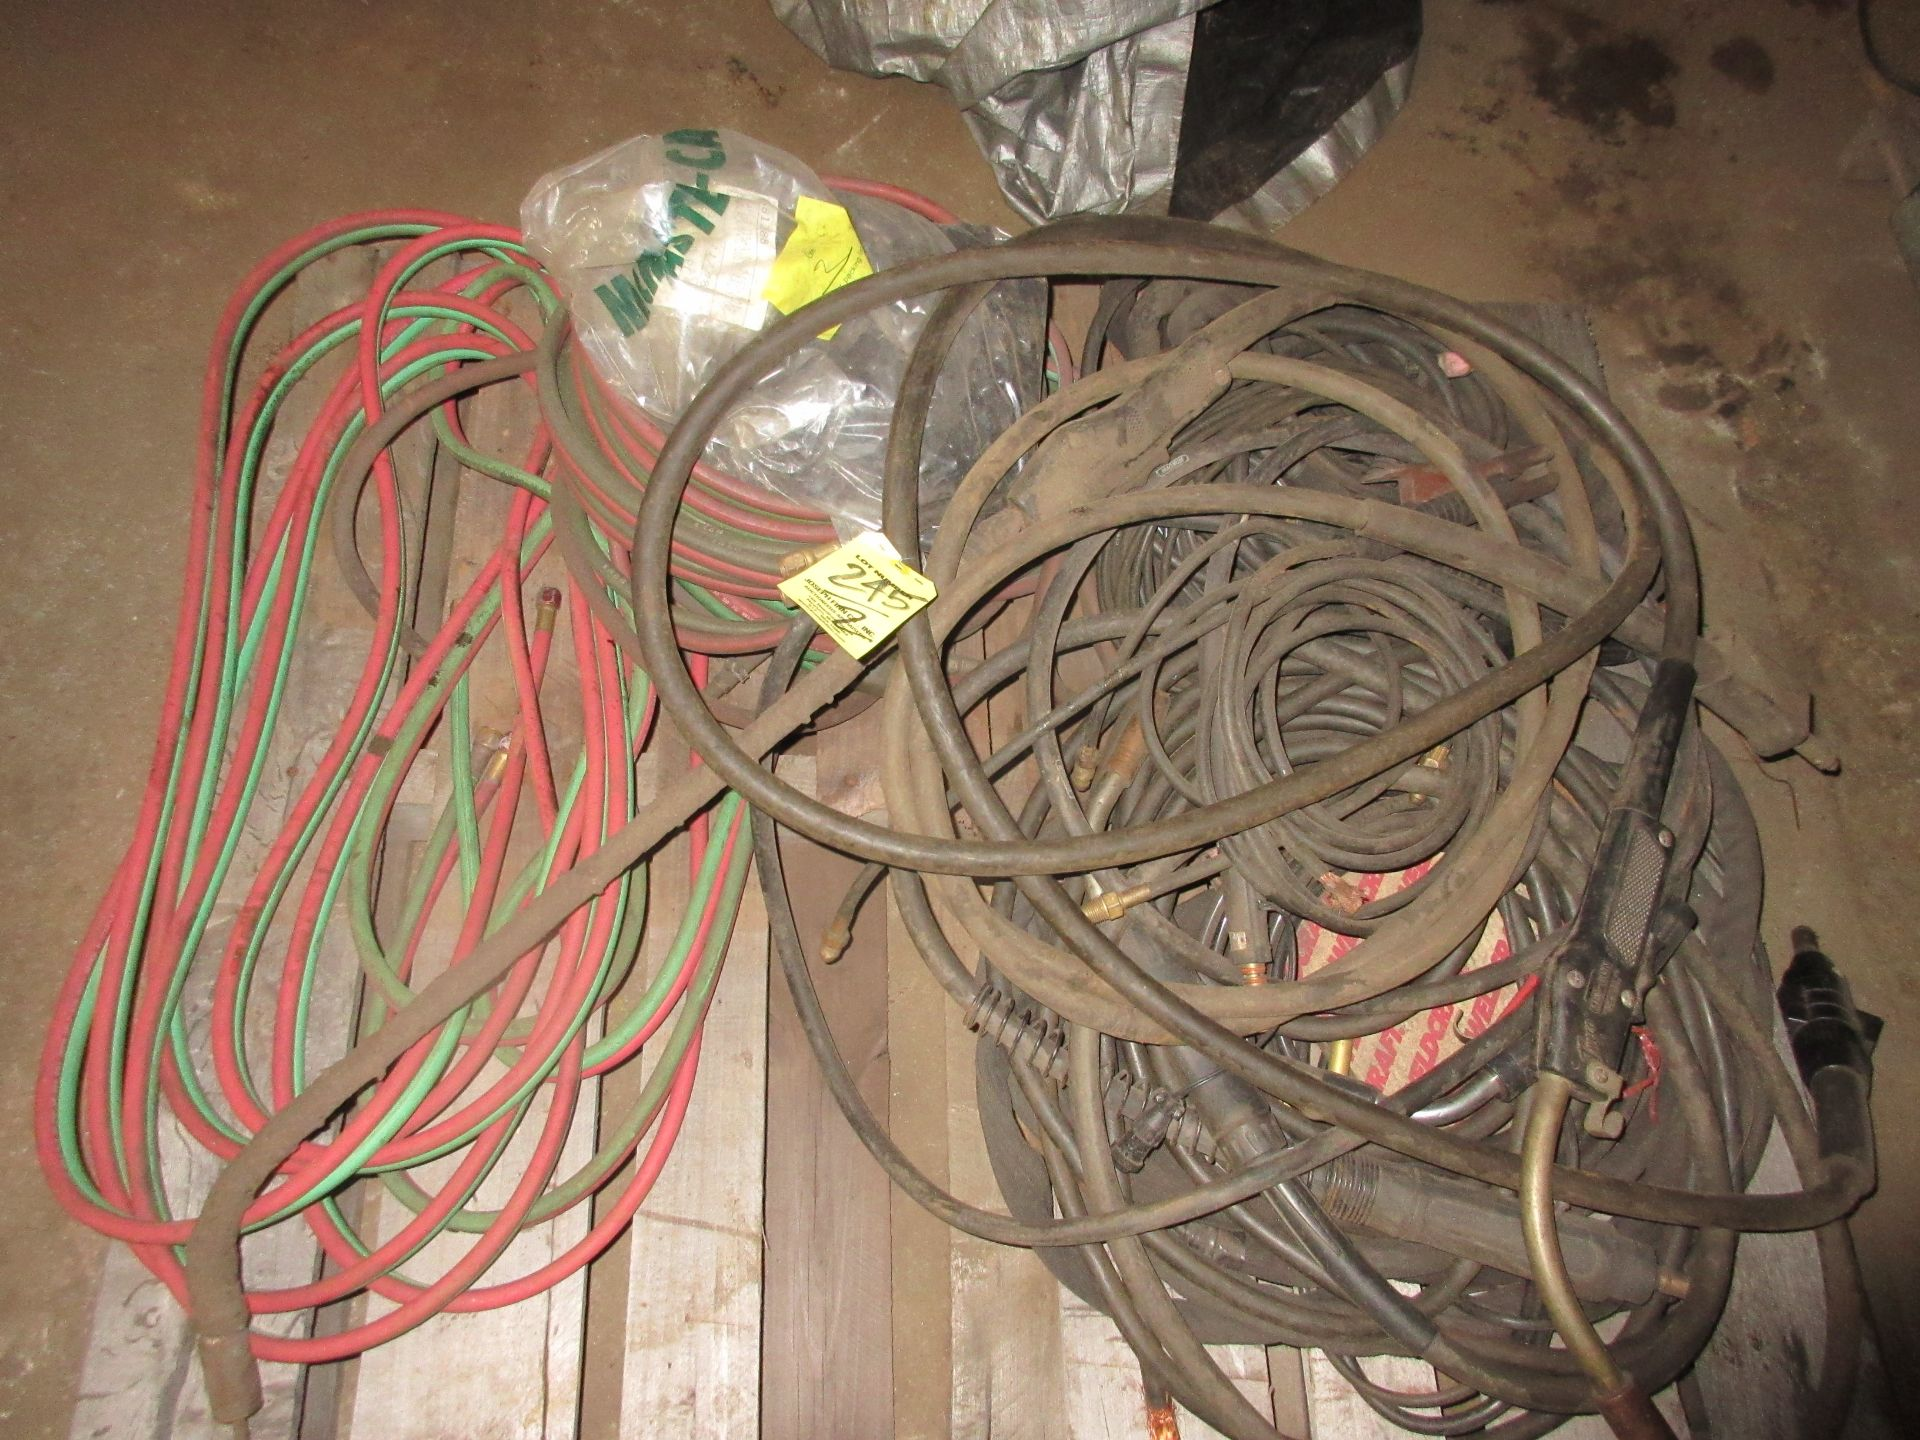 LOT Asst. Welding Cable & Torches on (2) Pallets